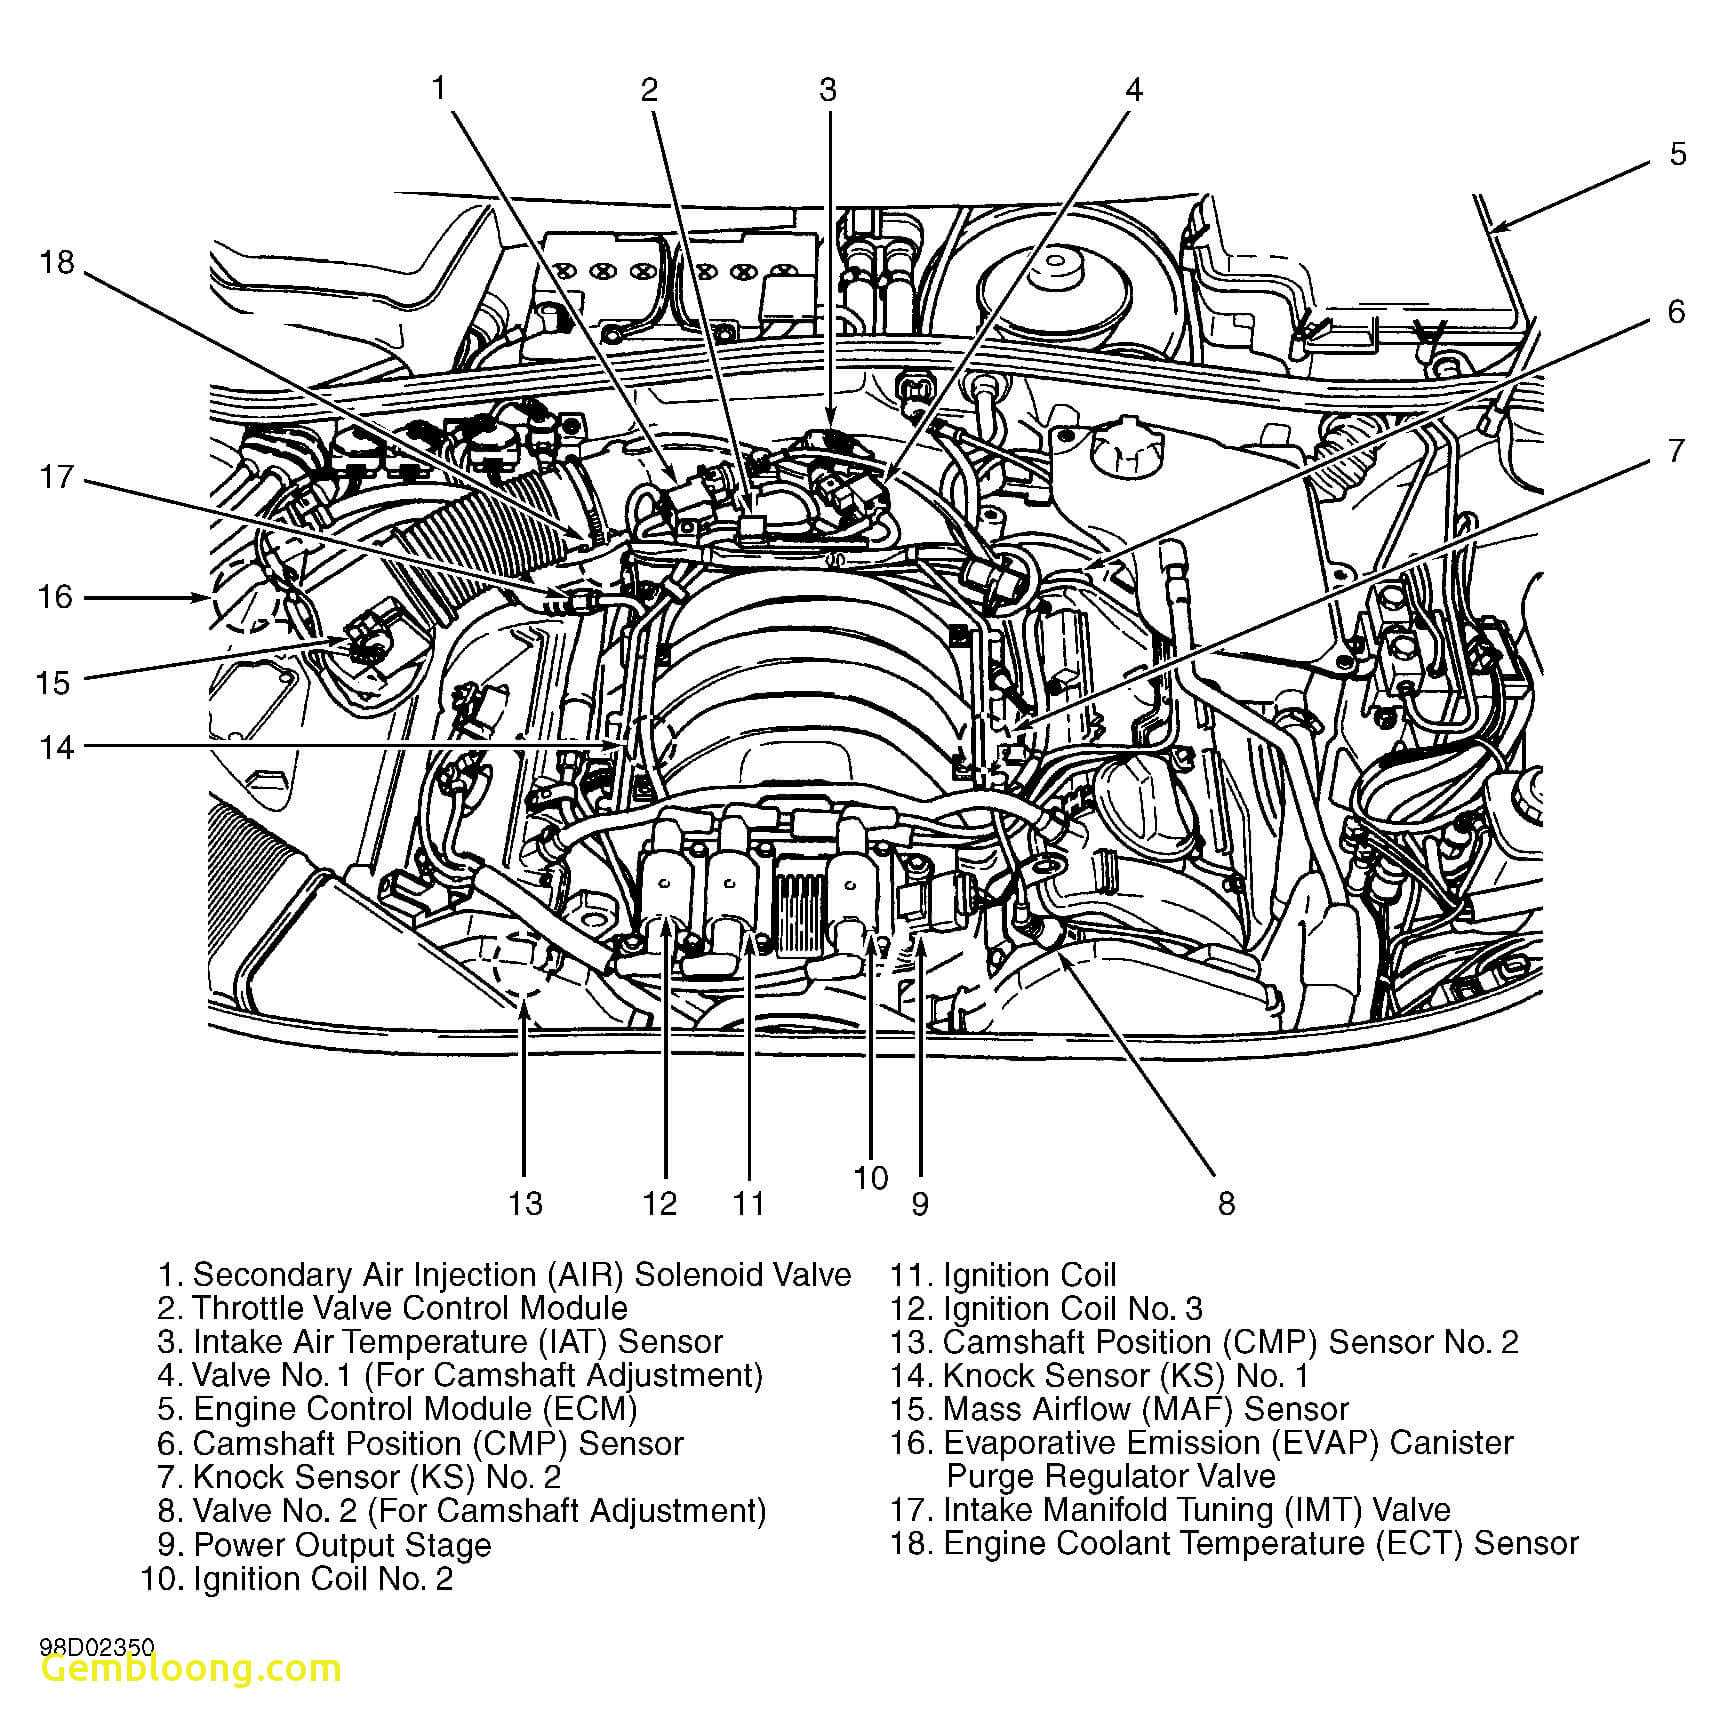 Time Ng 2 4 Chevy Engine Diagram - Do you want to download ...  Chevy Engine Diagram on